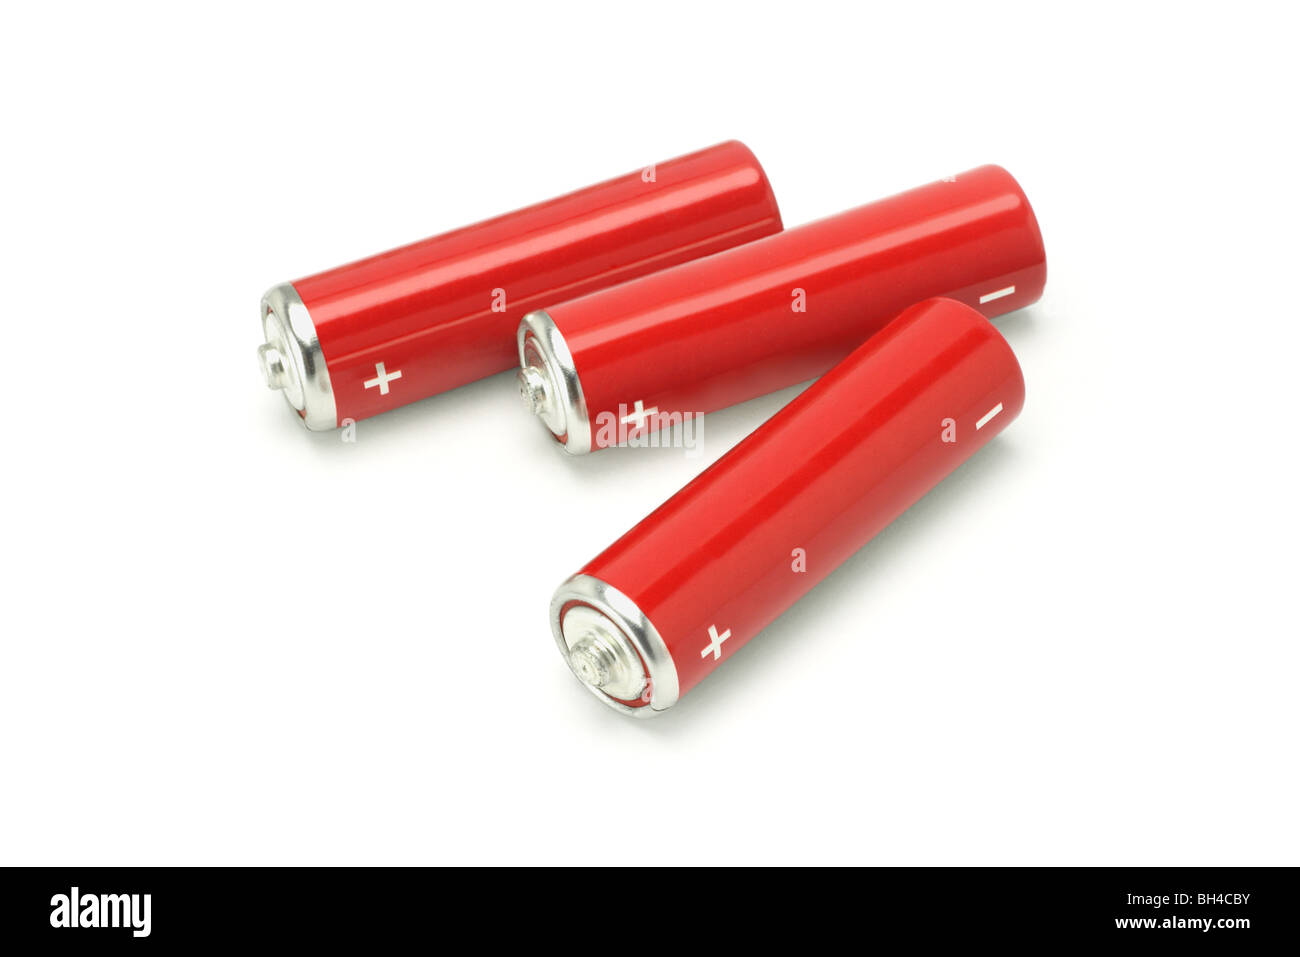 Three red AA size batteries on white background - Stock Image